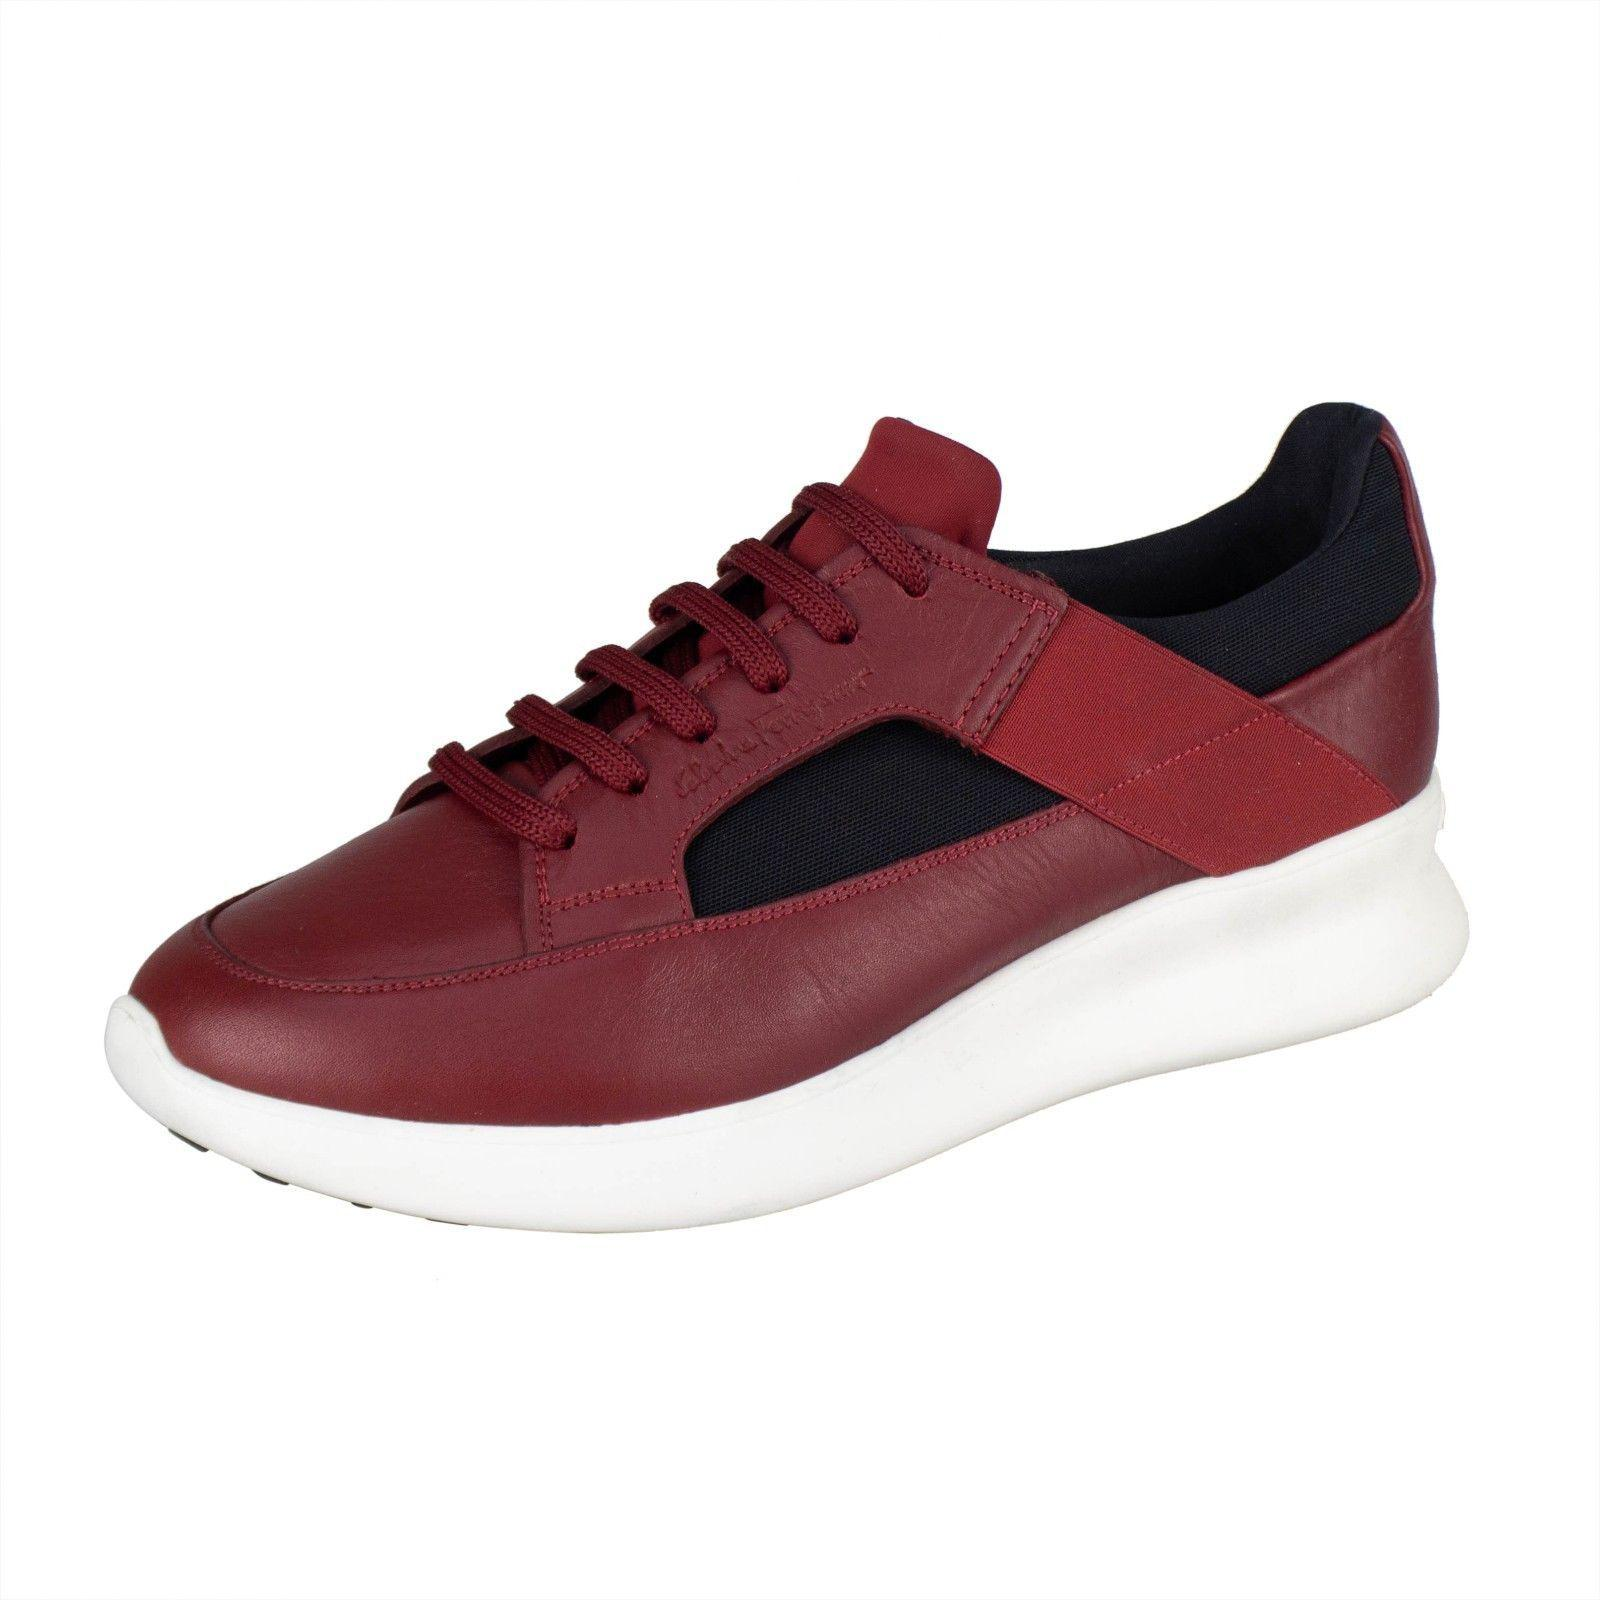 41693a4b277c2 Lyst - Ferragamo Red Calfskin Leather Sneakers Shoes in Red for Men